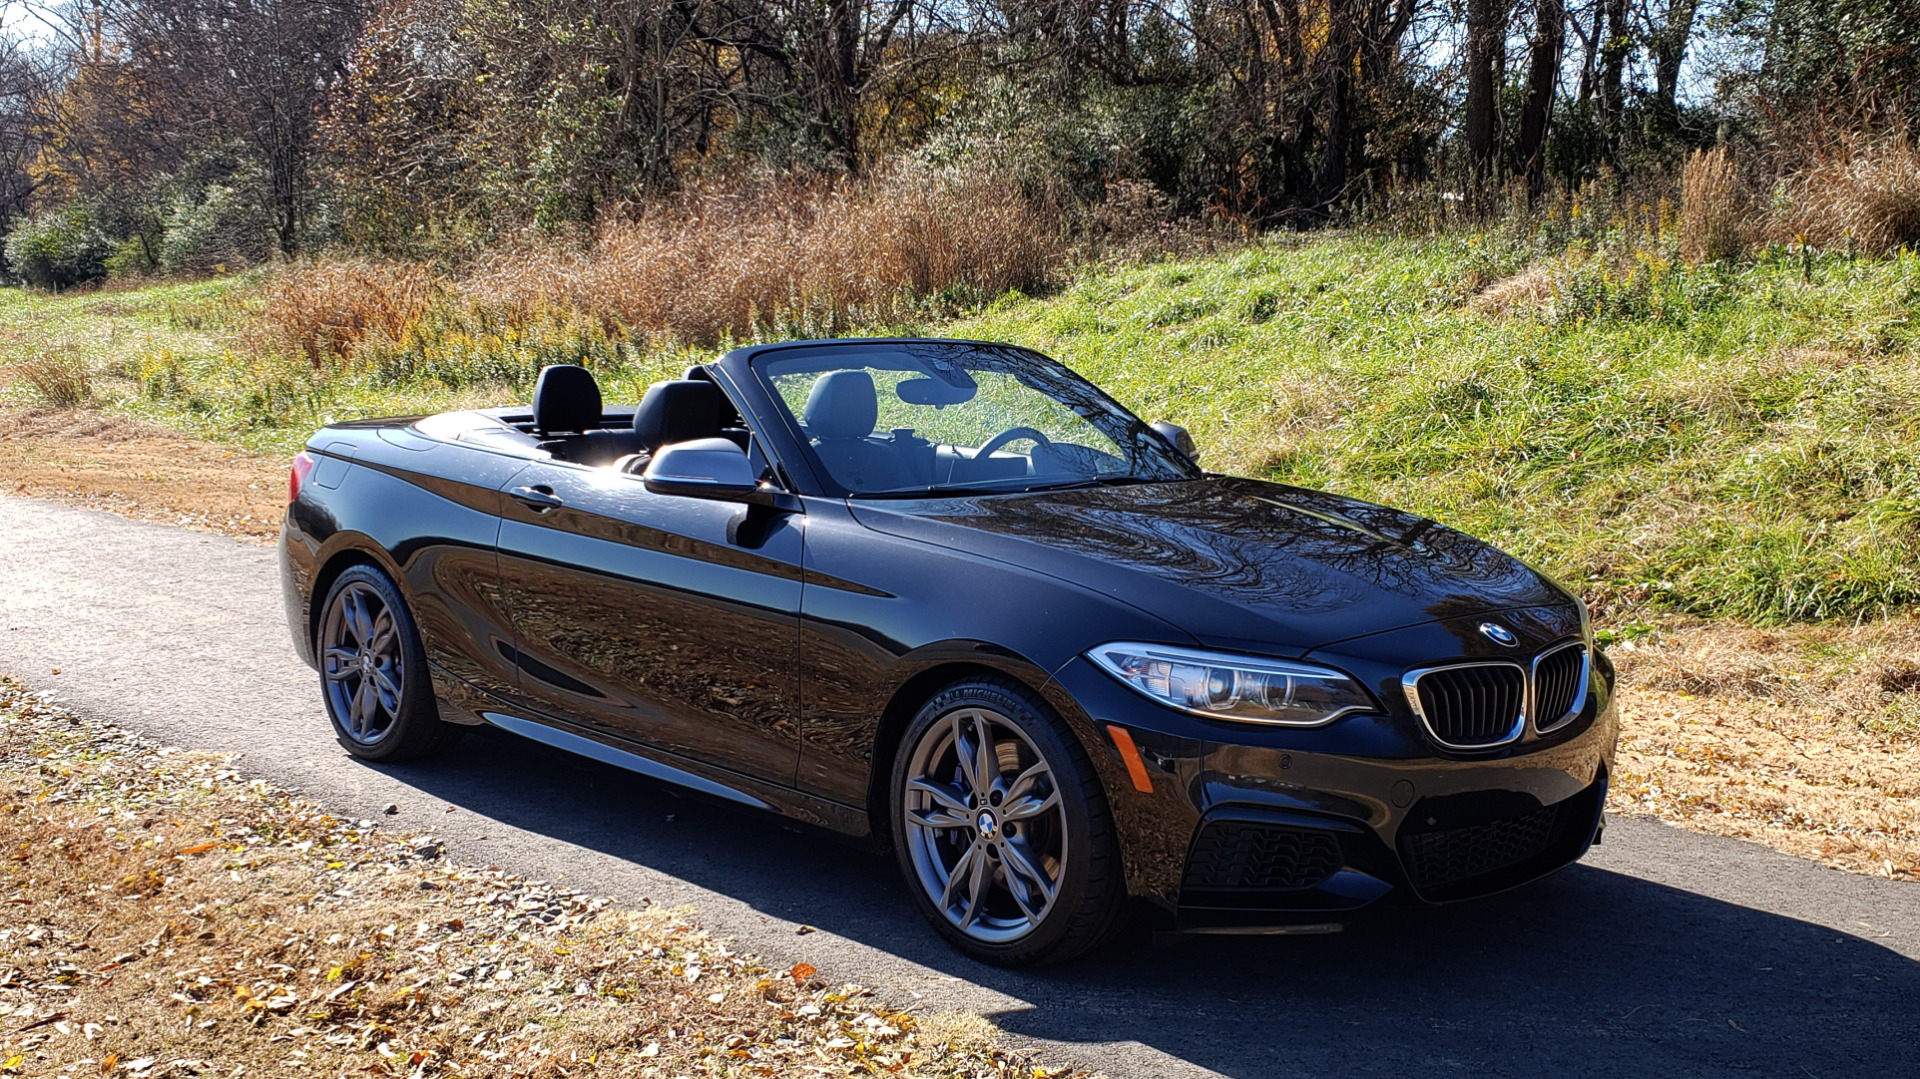 Used 2016 BMW 2 SERIES M235i CONV / DRVR ASST PLUS / TECH / HTD STS / H/K SOUND for sale Sold at Formula Imports in Charlotte NC 28227 20